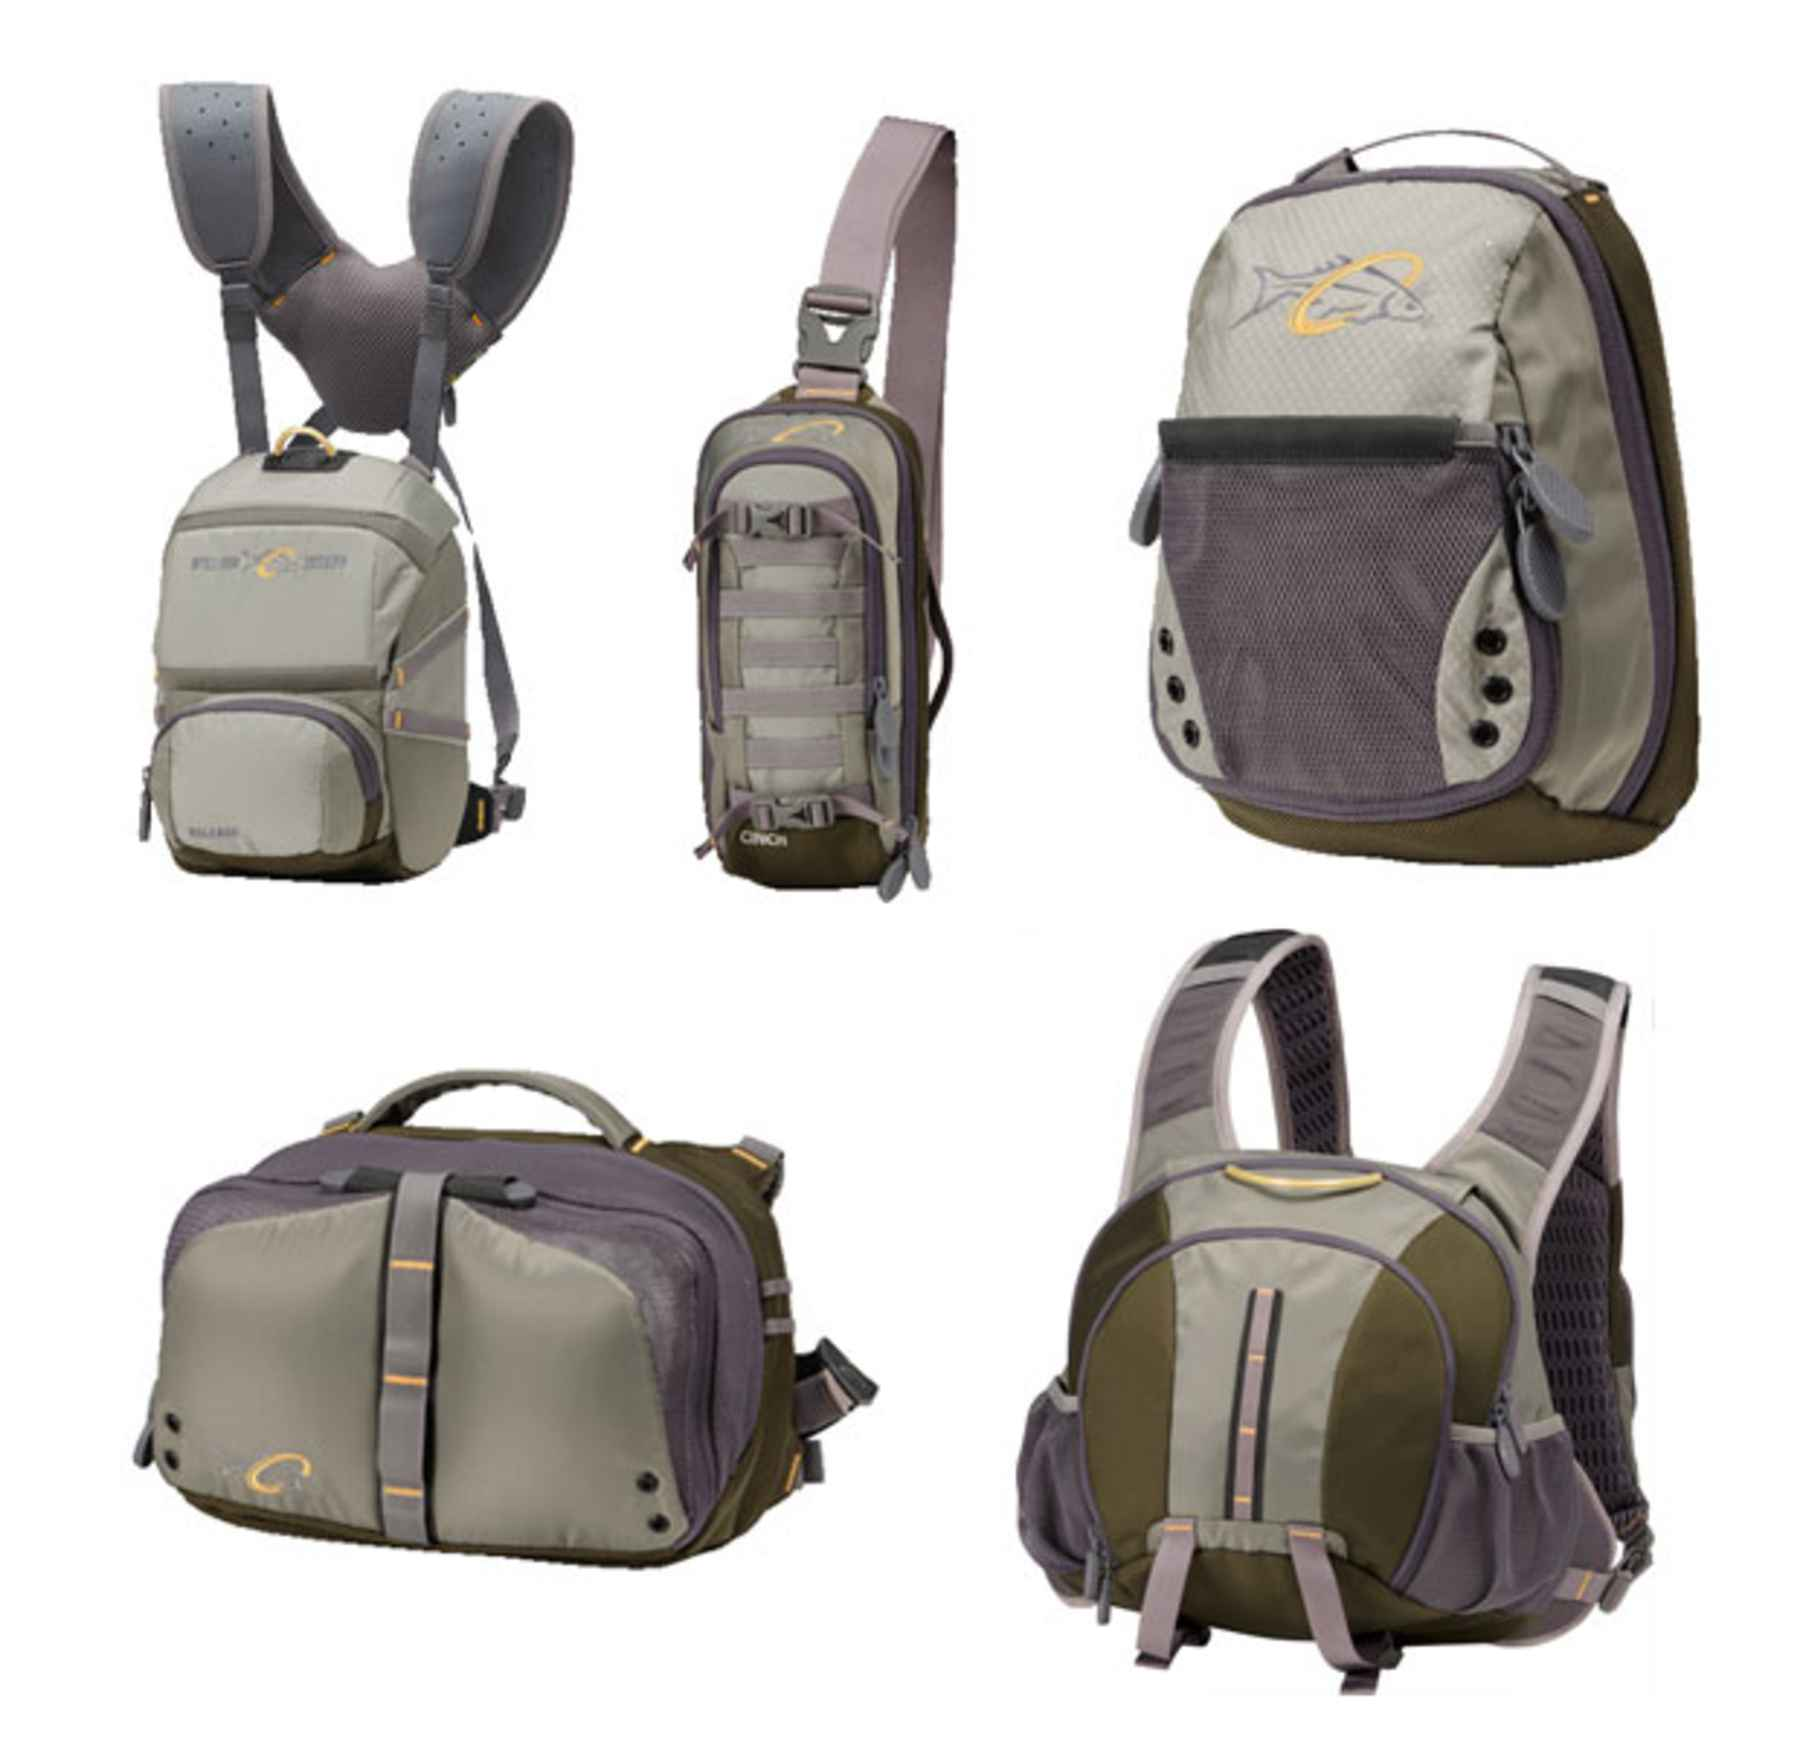 William joseph outs five all new fly fishing packs for for Fishing chest pack